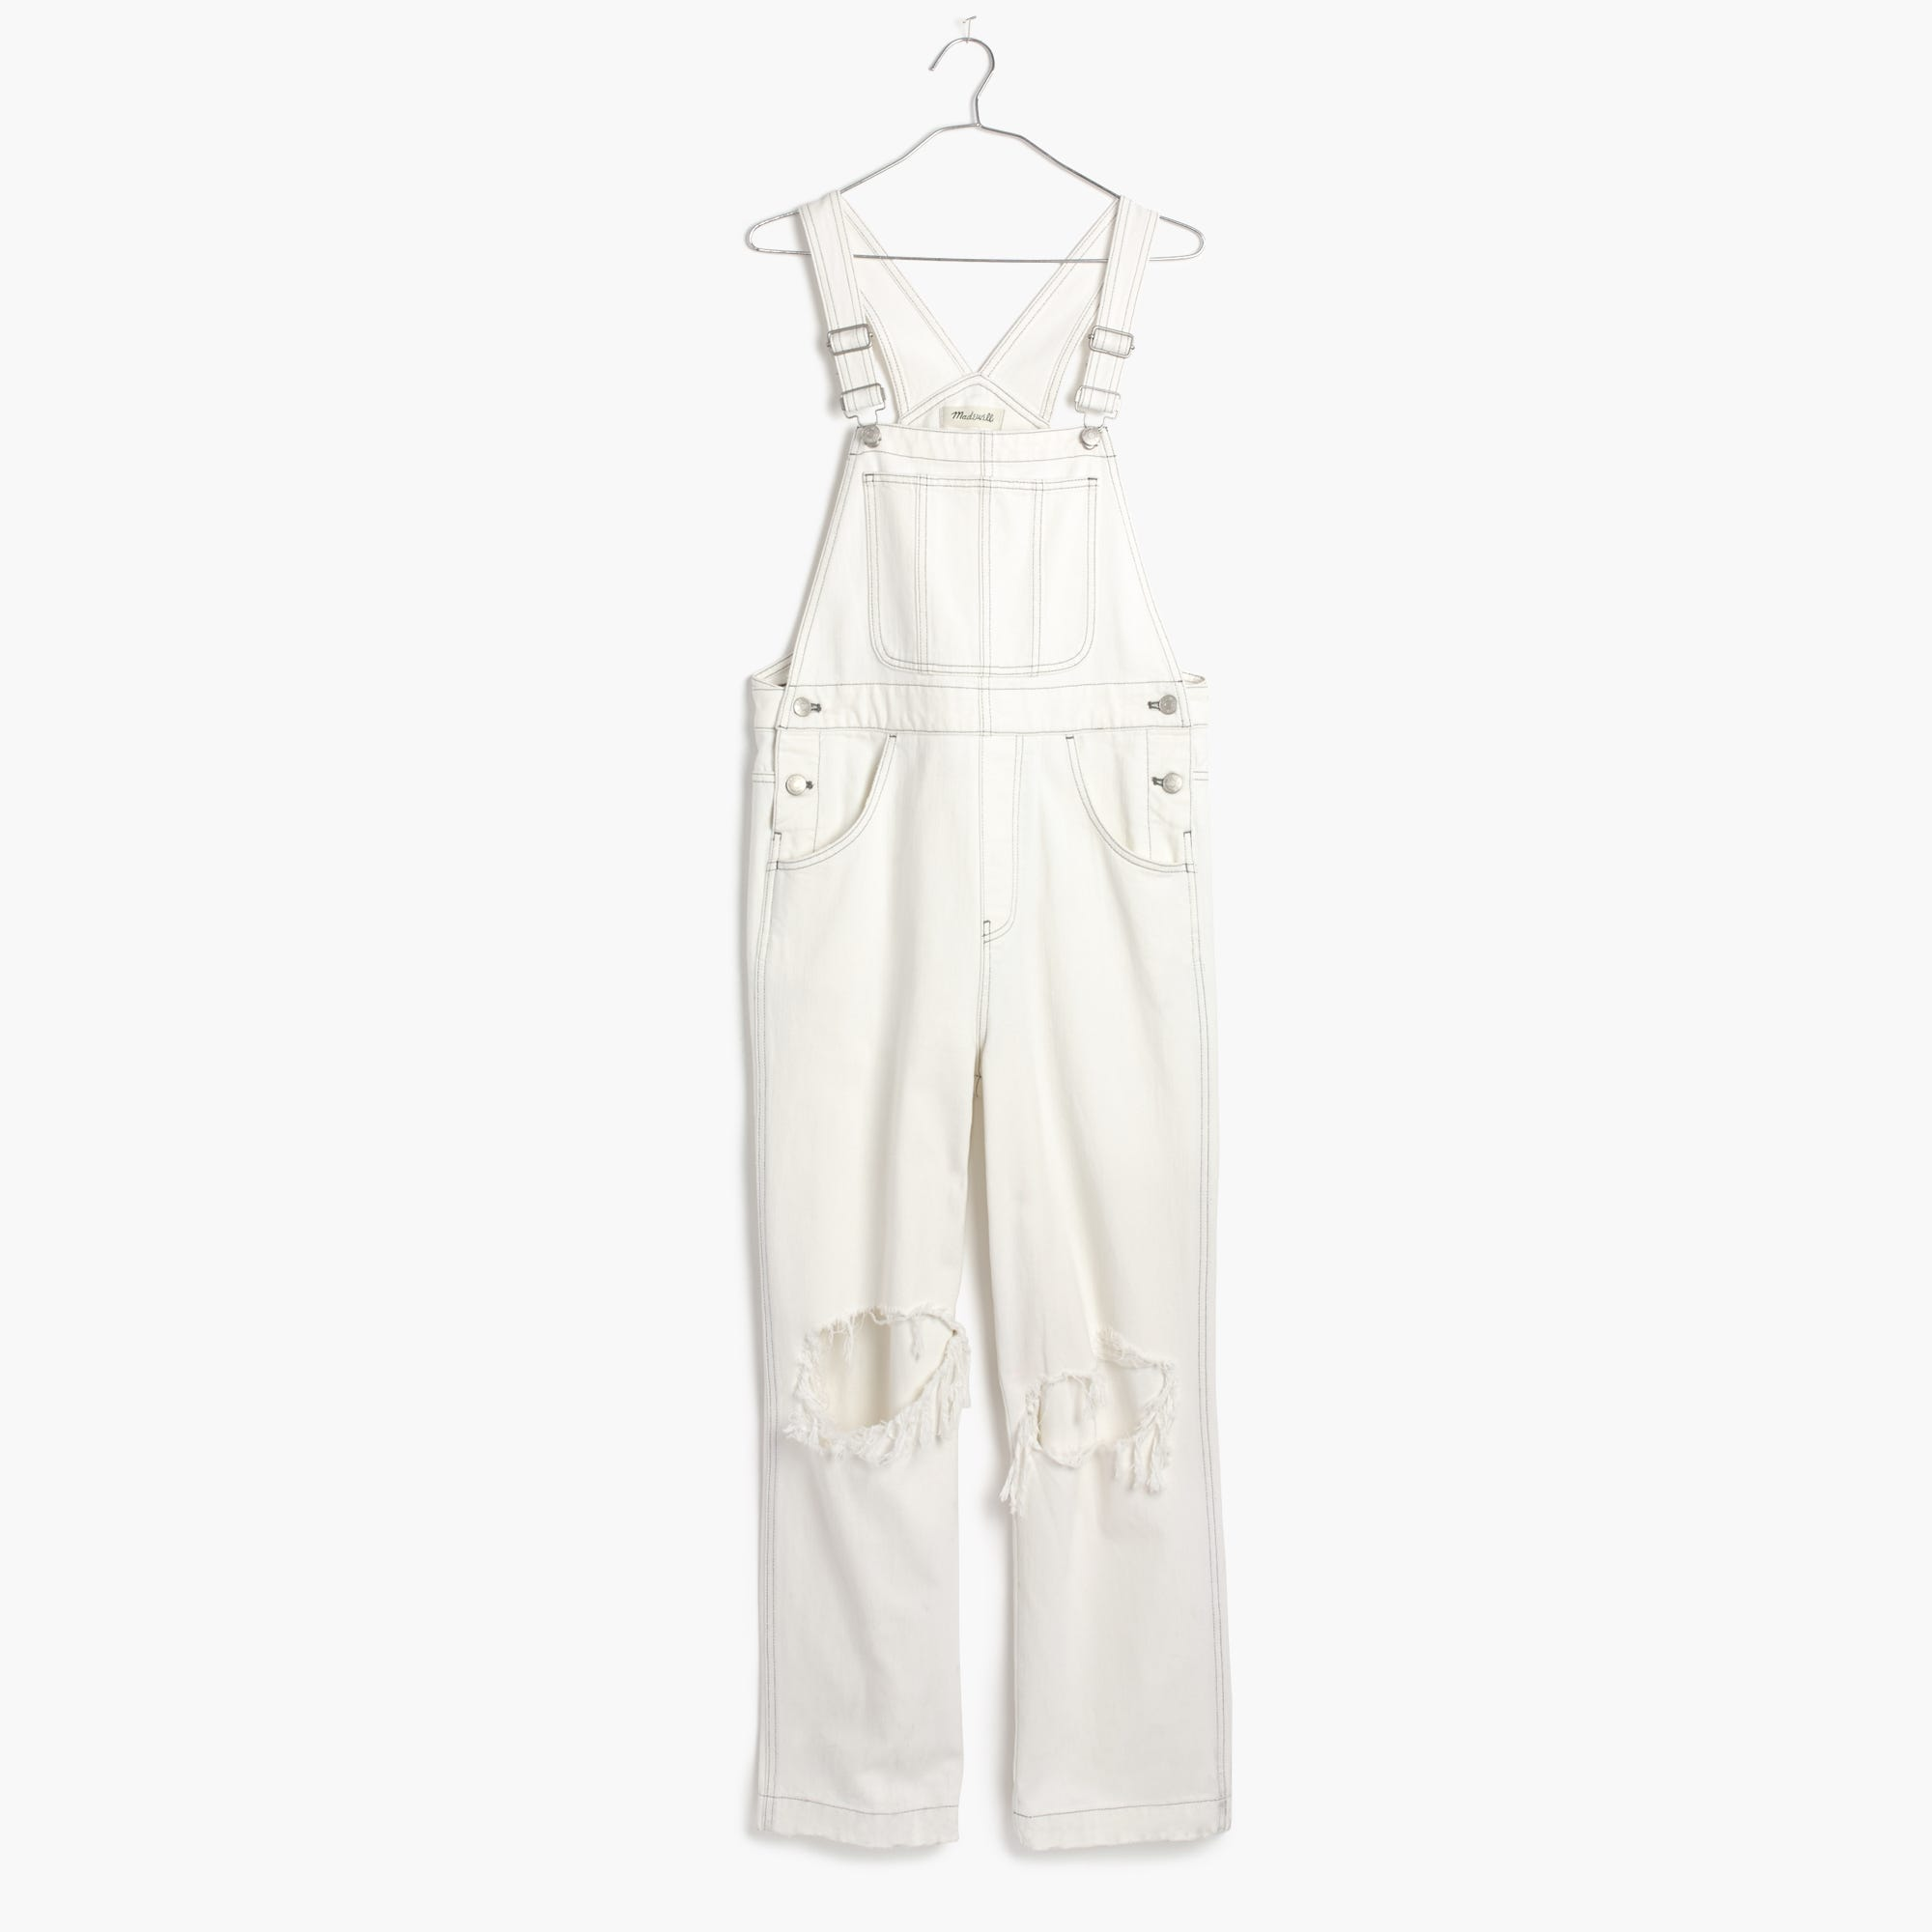 b13230d7aa7 Madewell Collection Vintage Inspired Spring Clothing